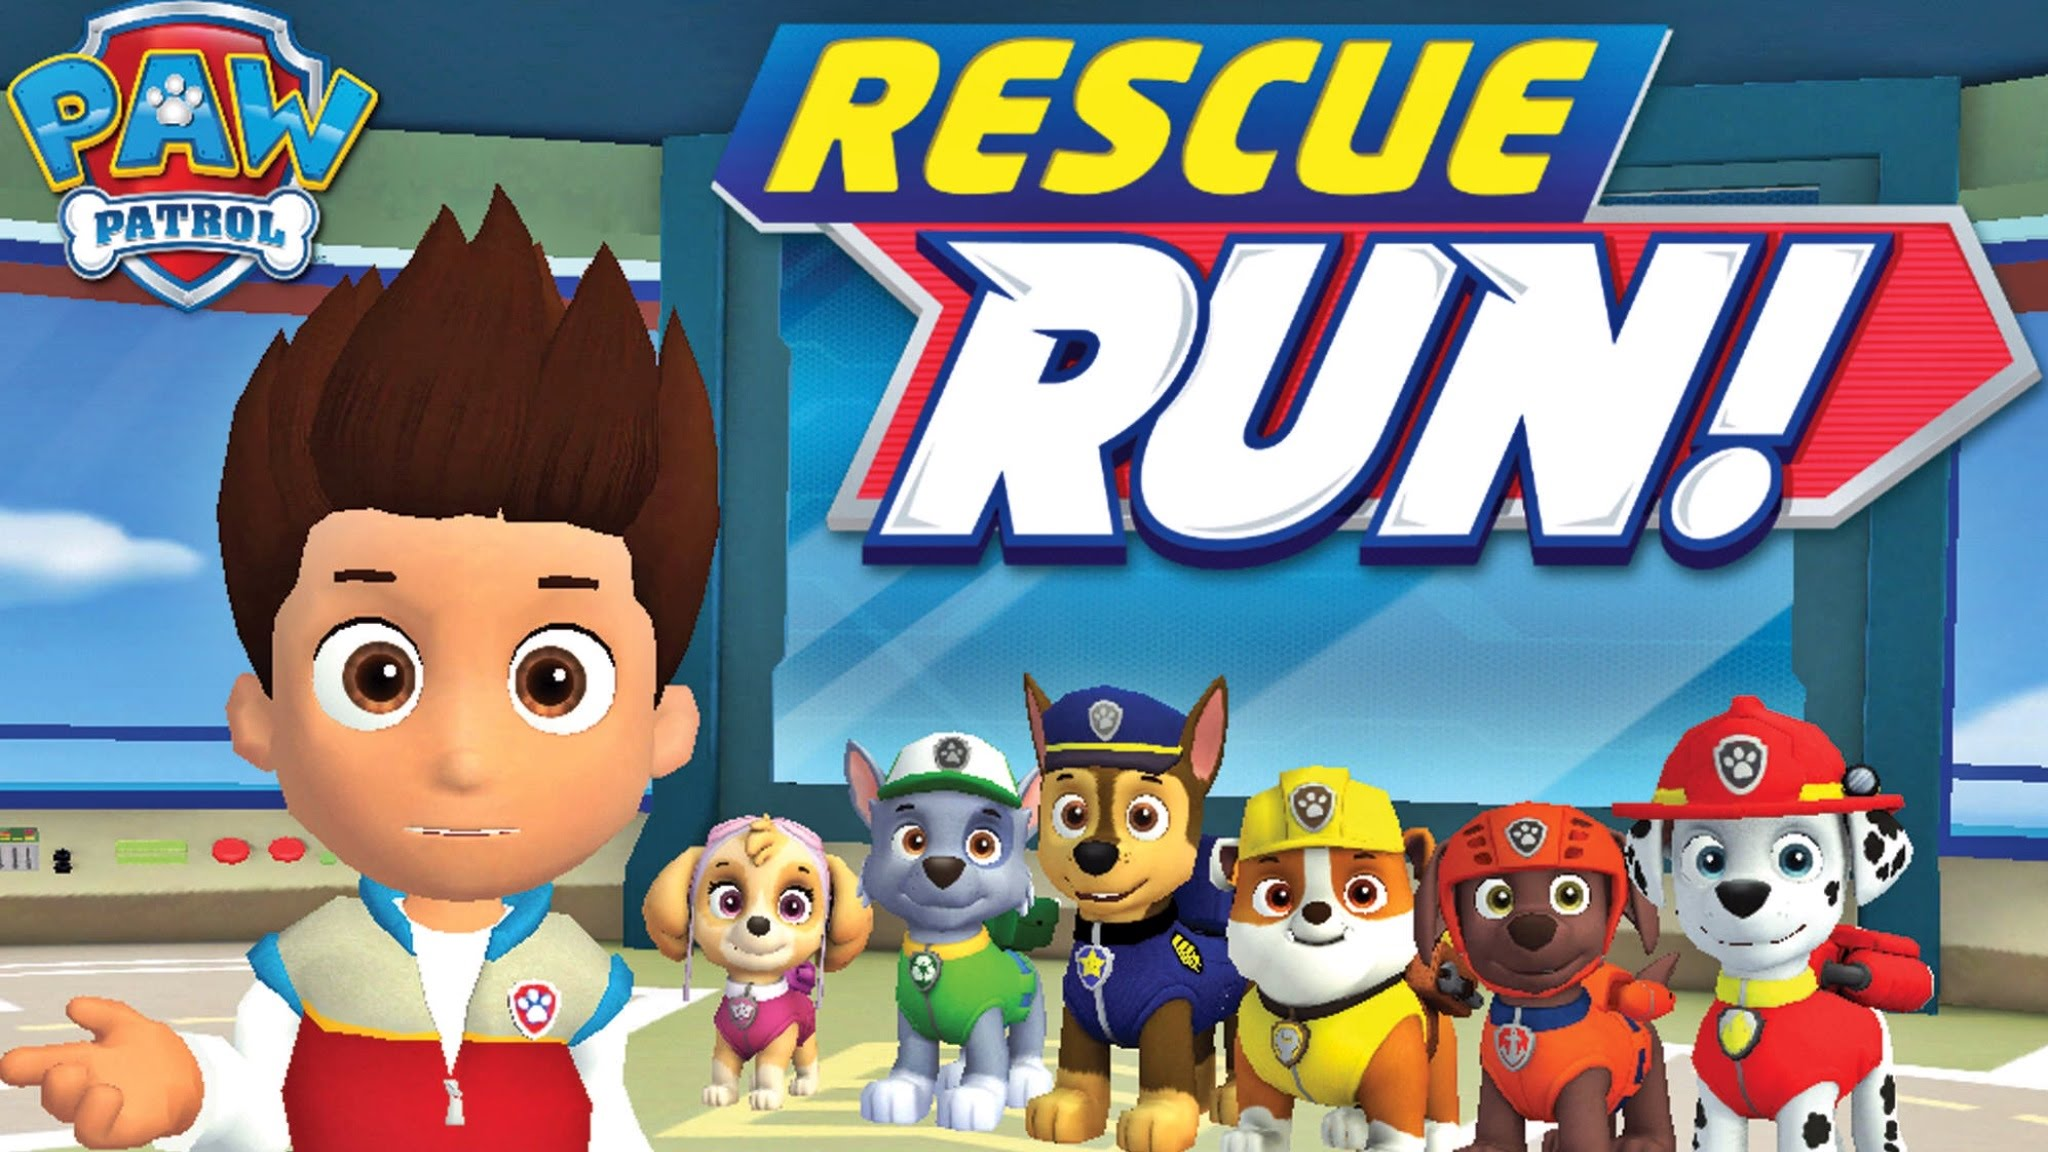 Best Images  Paw Patrol HD Widescreen Wallpapers  2048x1152